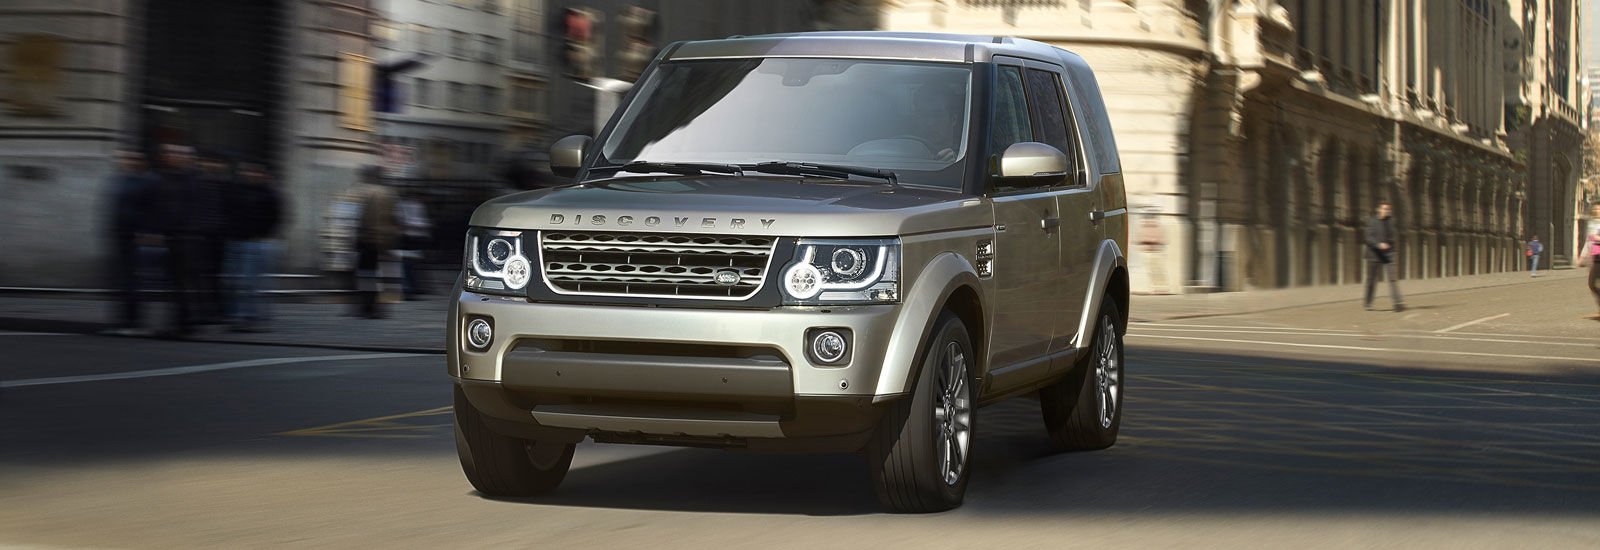 List Of Suvs With The Biggest Boots Carwow